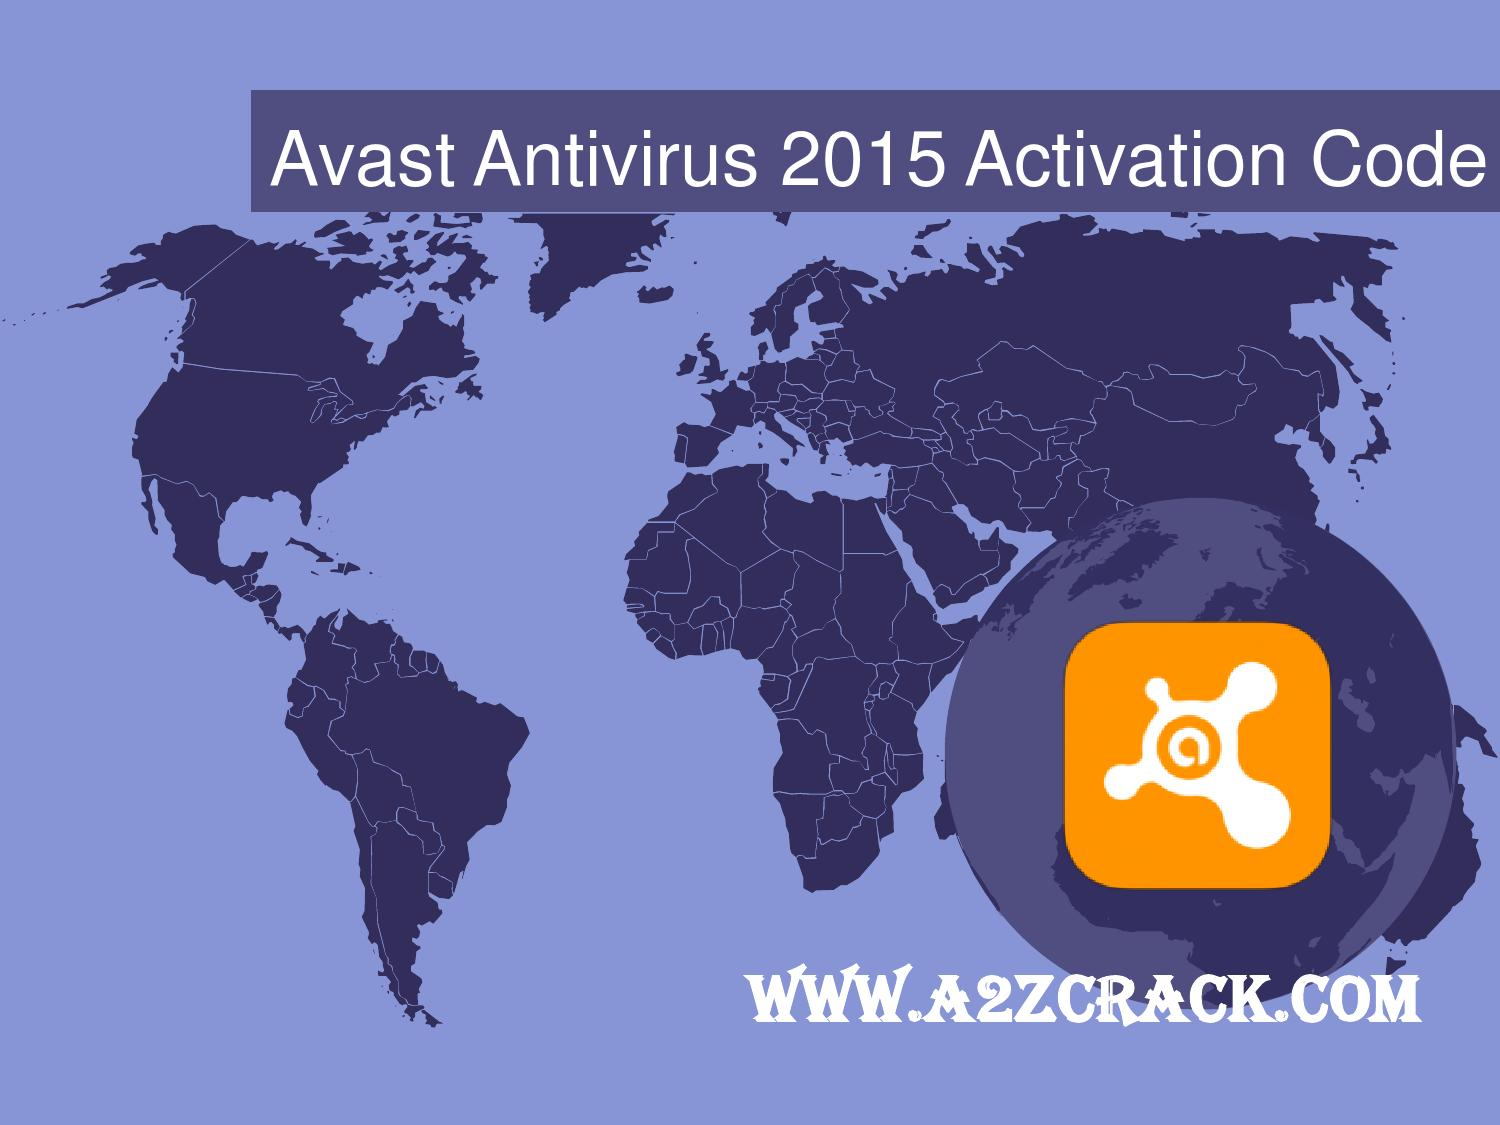 Avast Antivirus 2015 Activation Code Preview By A2zcrack By Noman